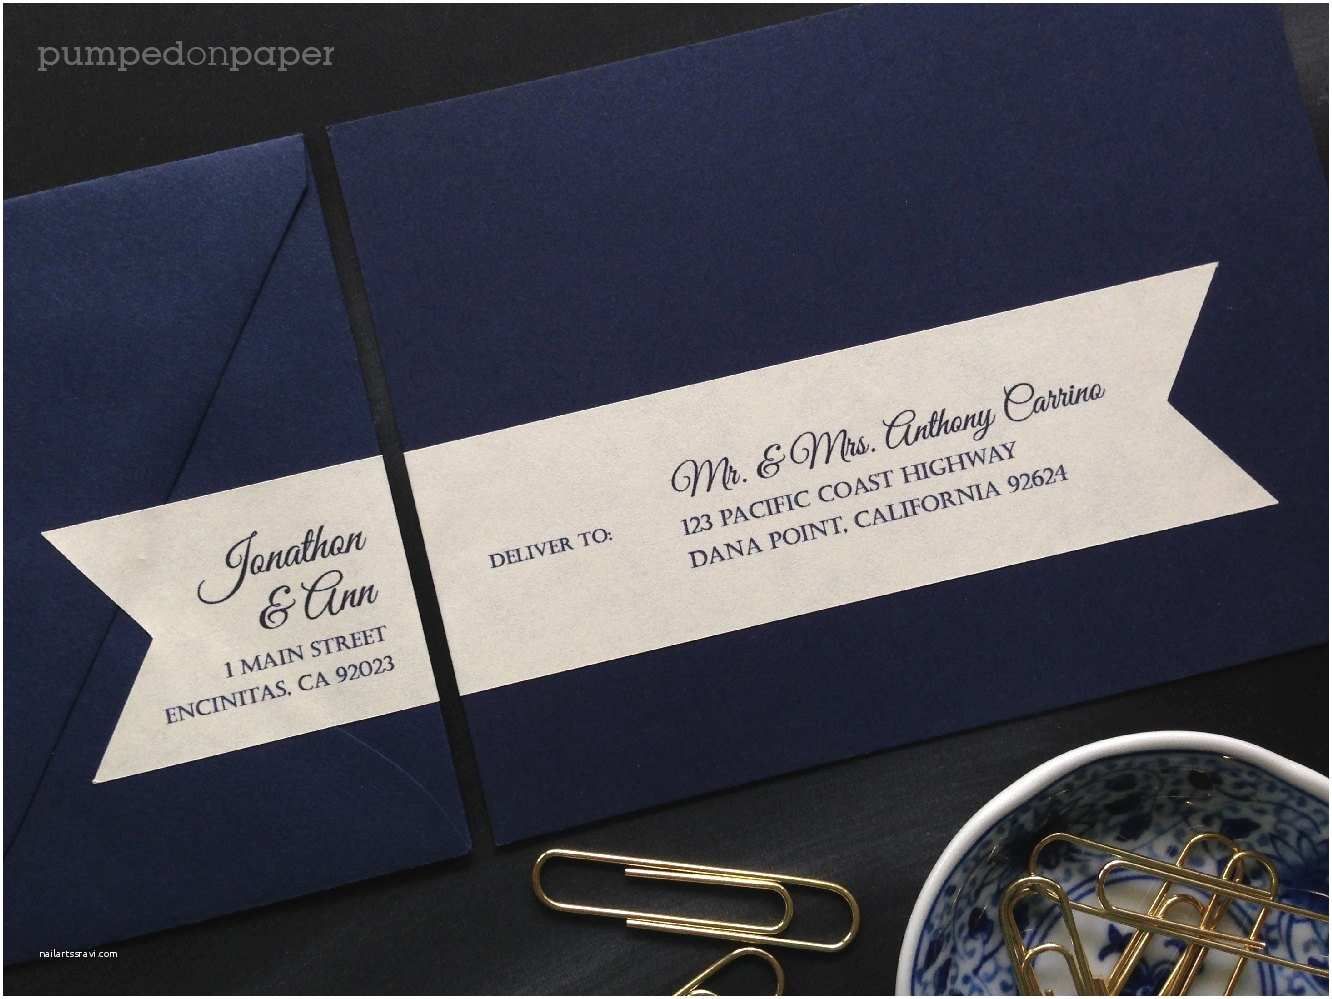 Return Labels for Wedding Invitations Personalized Mailing Address Labels for Wedding Invitations